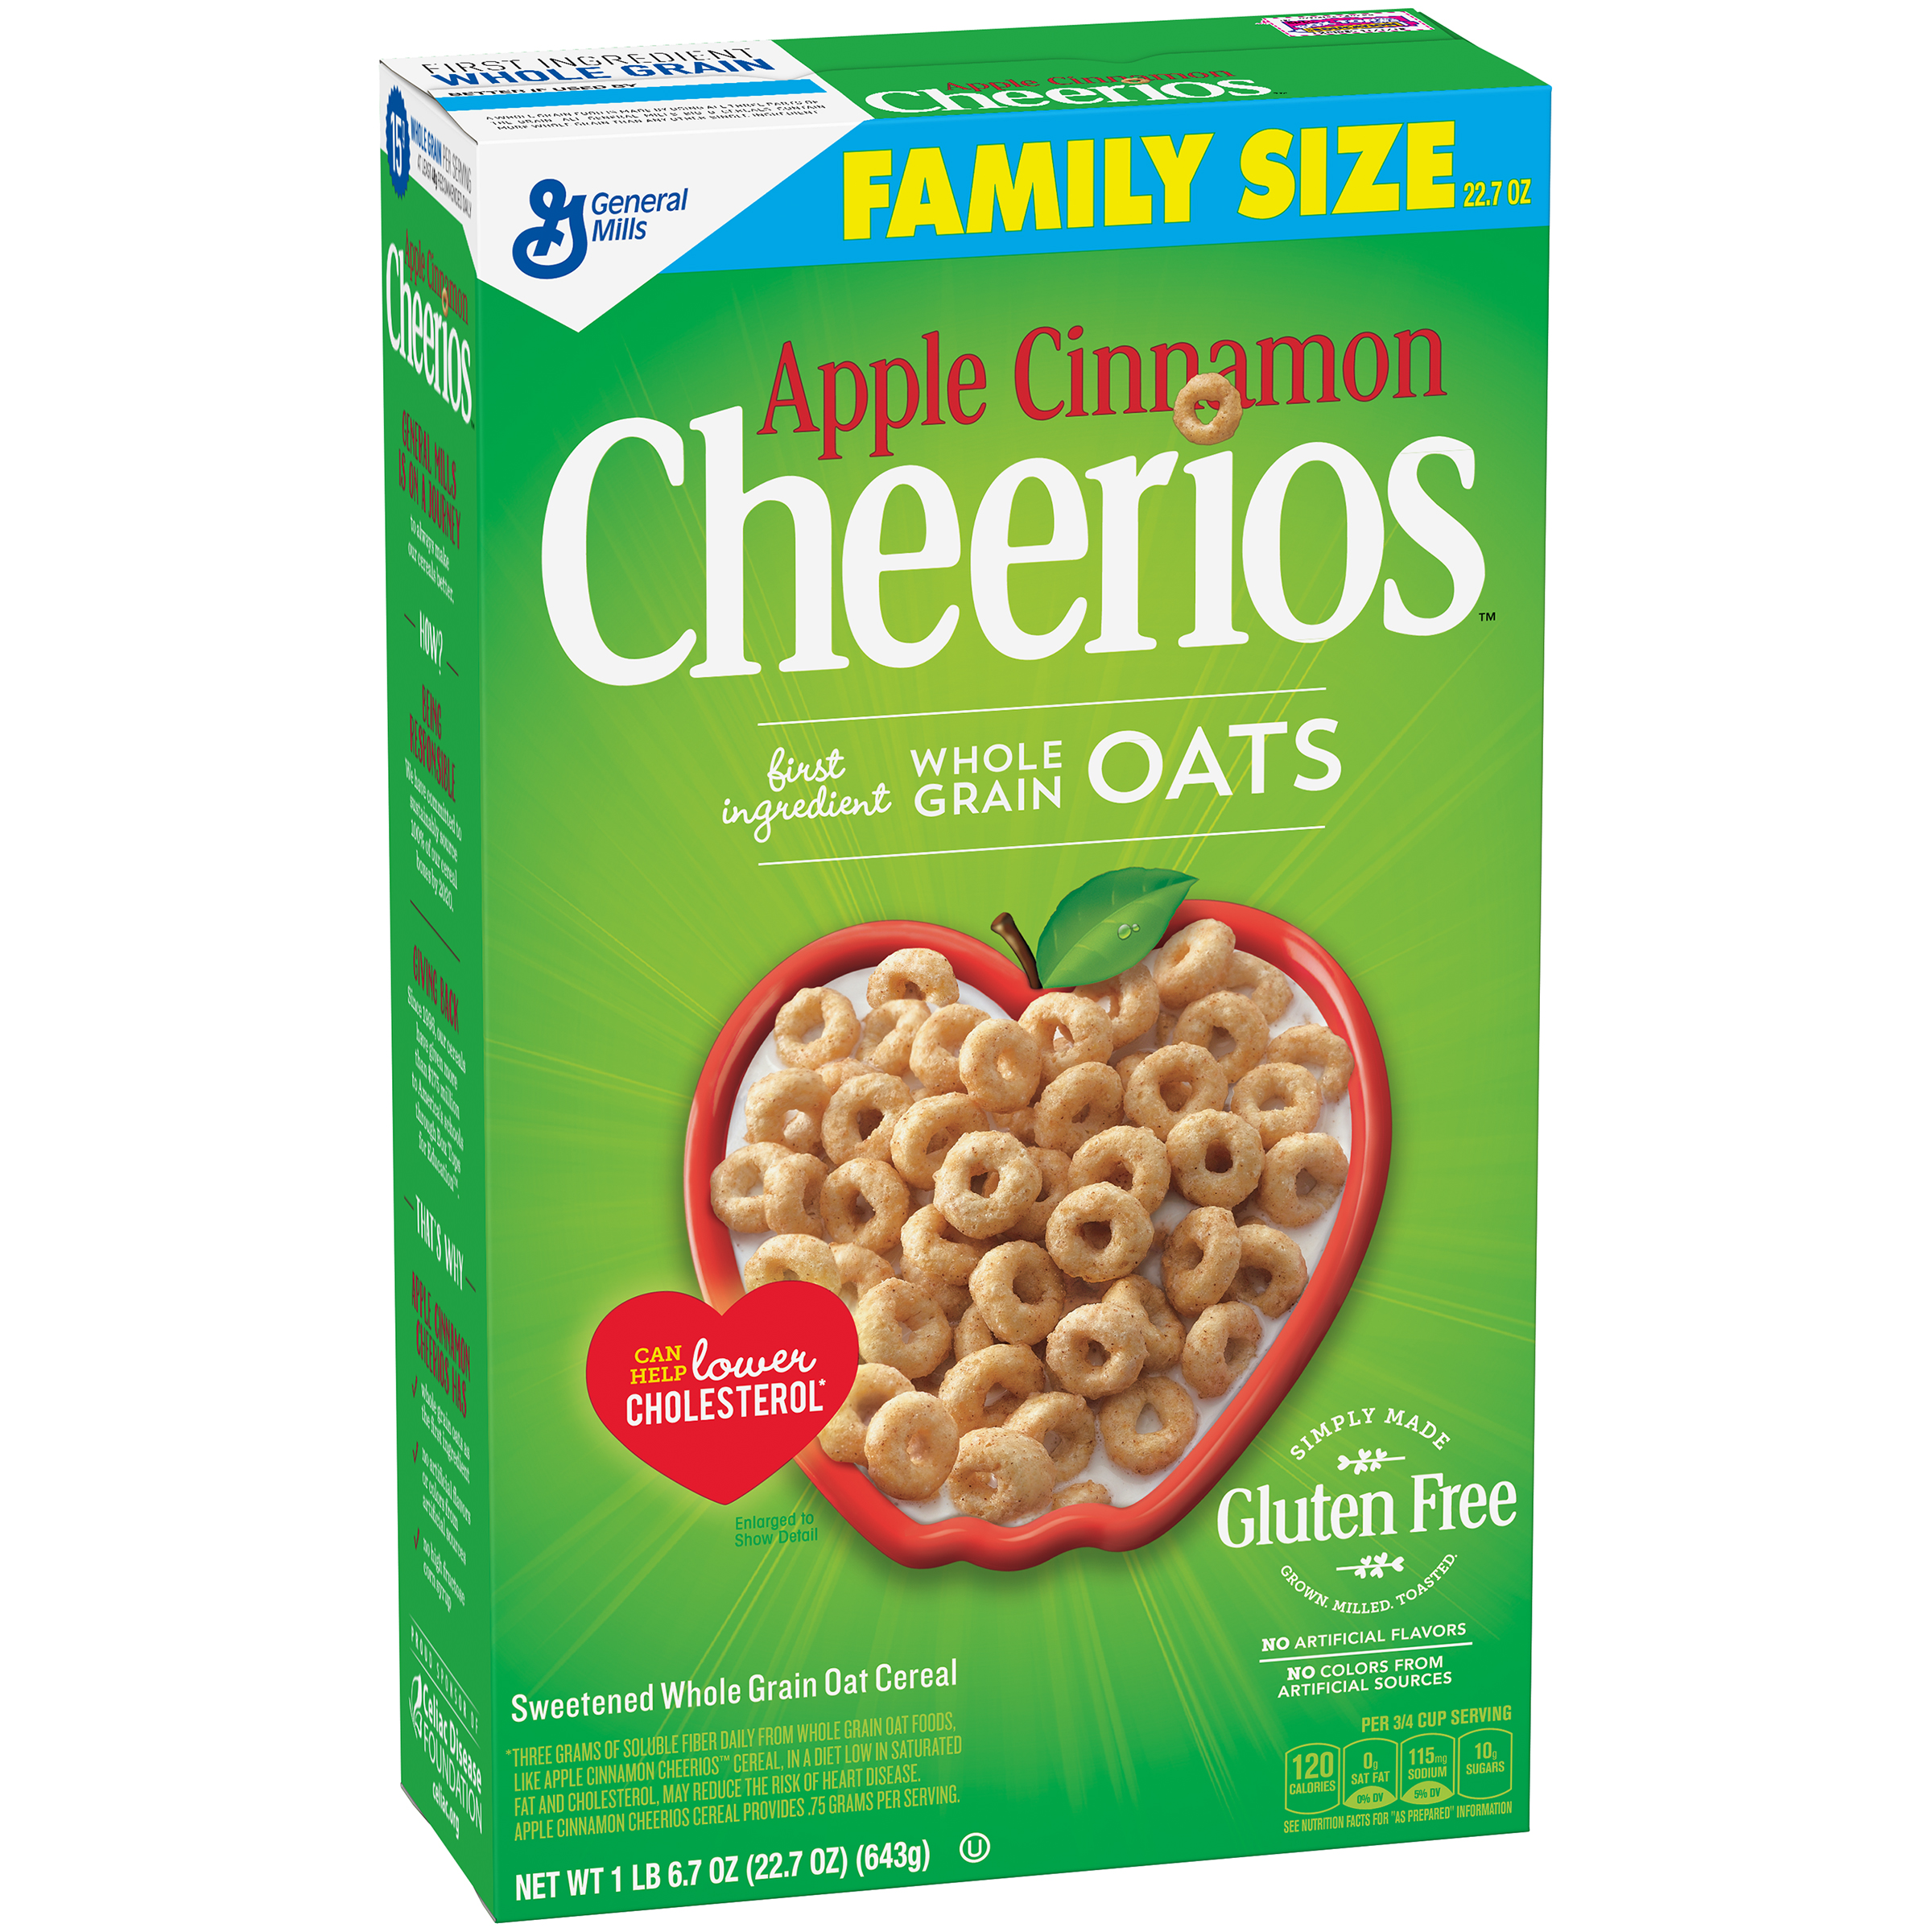 Apple Cinnamon Cheerios�� Gluten Free Cereal 22.7 oz. Box